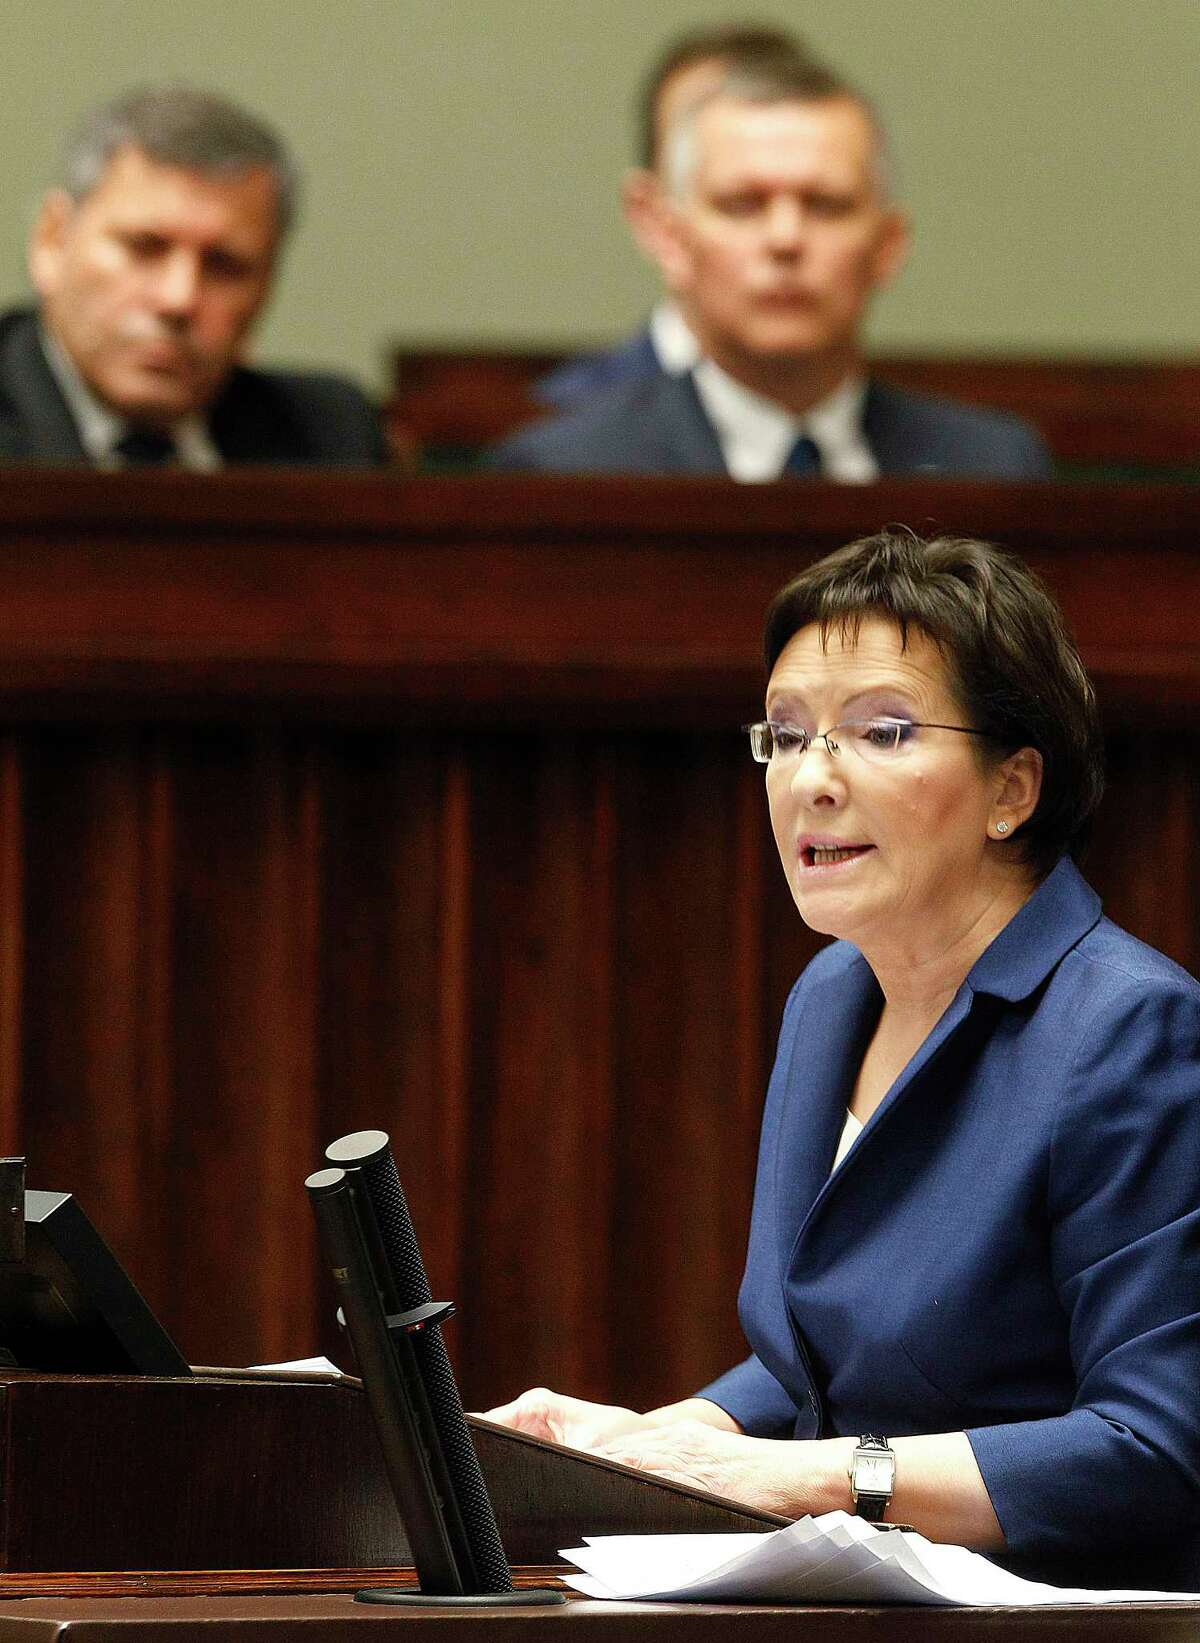 Poland's new prime minister Ewa Kopacz delivers her inaugural speech in the parliament in Warsaw, Poland, Wednesday, Oct. 1, 2014. Kopacz took over the post from Donald Tusk, who will head the European Council starting Dec. 1. (AP Photo/Czarek Sokolowski)